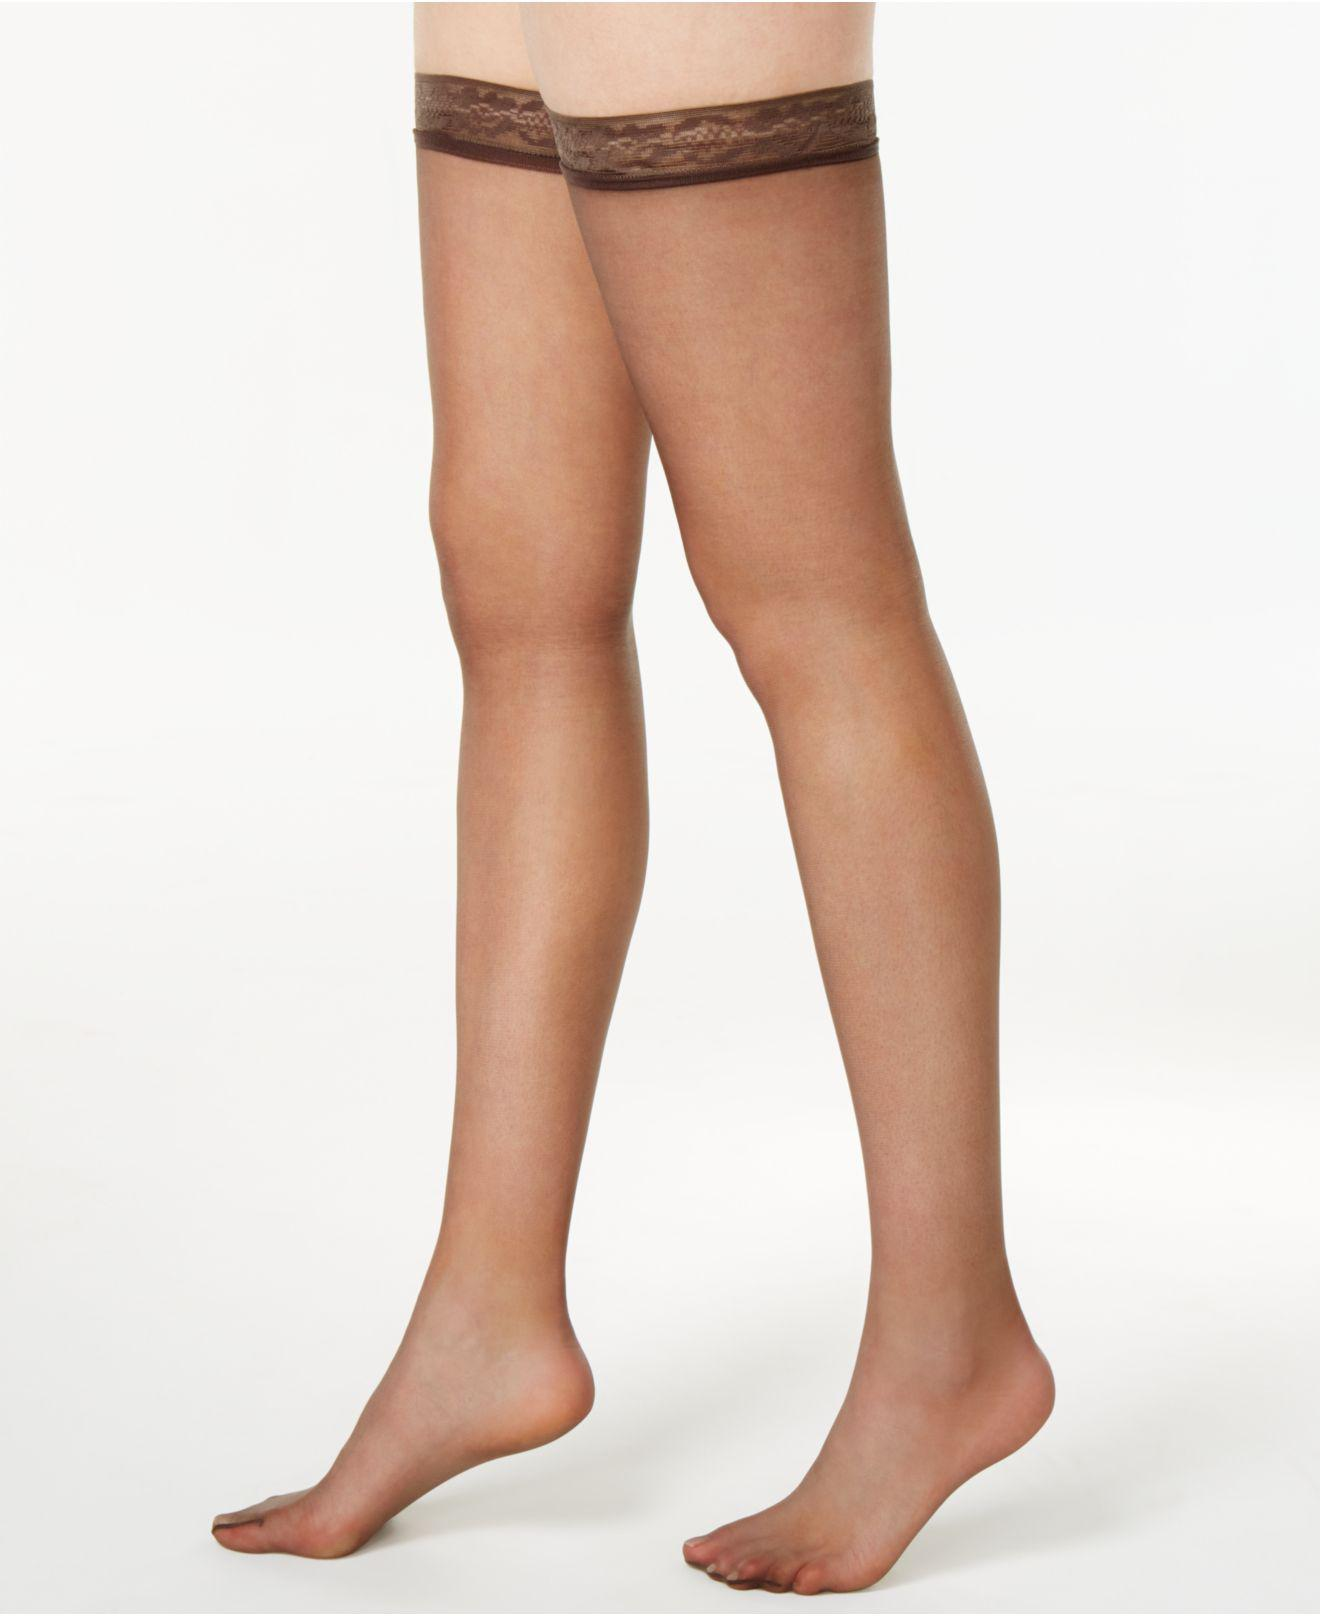 388155e1a39 Hanes Silk Reflections Silky Sheer Thigh Highs 720 - Save 18% - Lyst